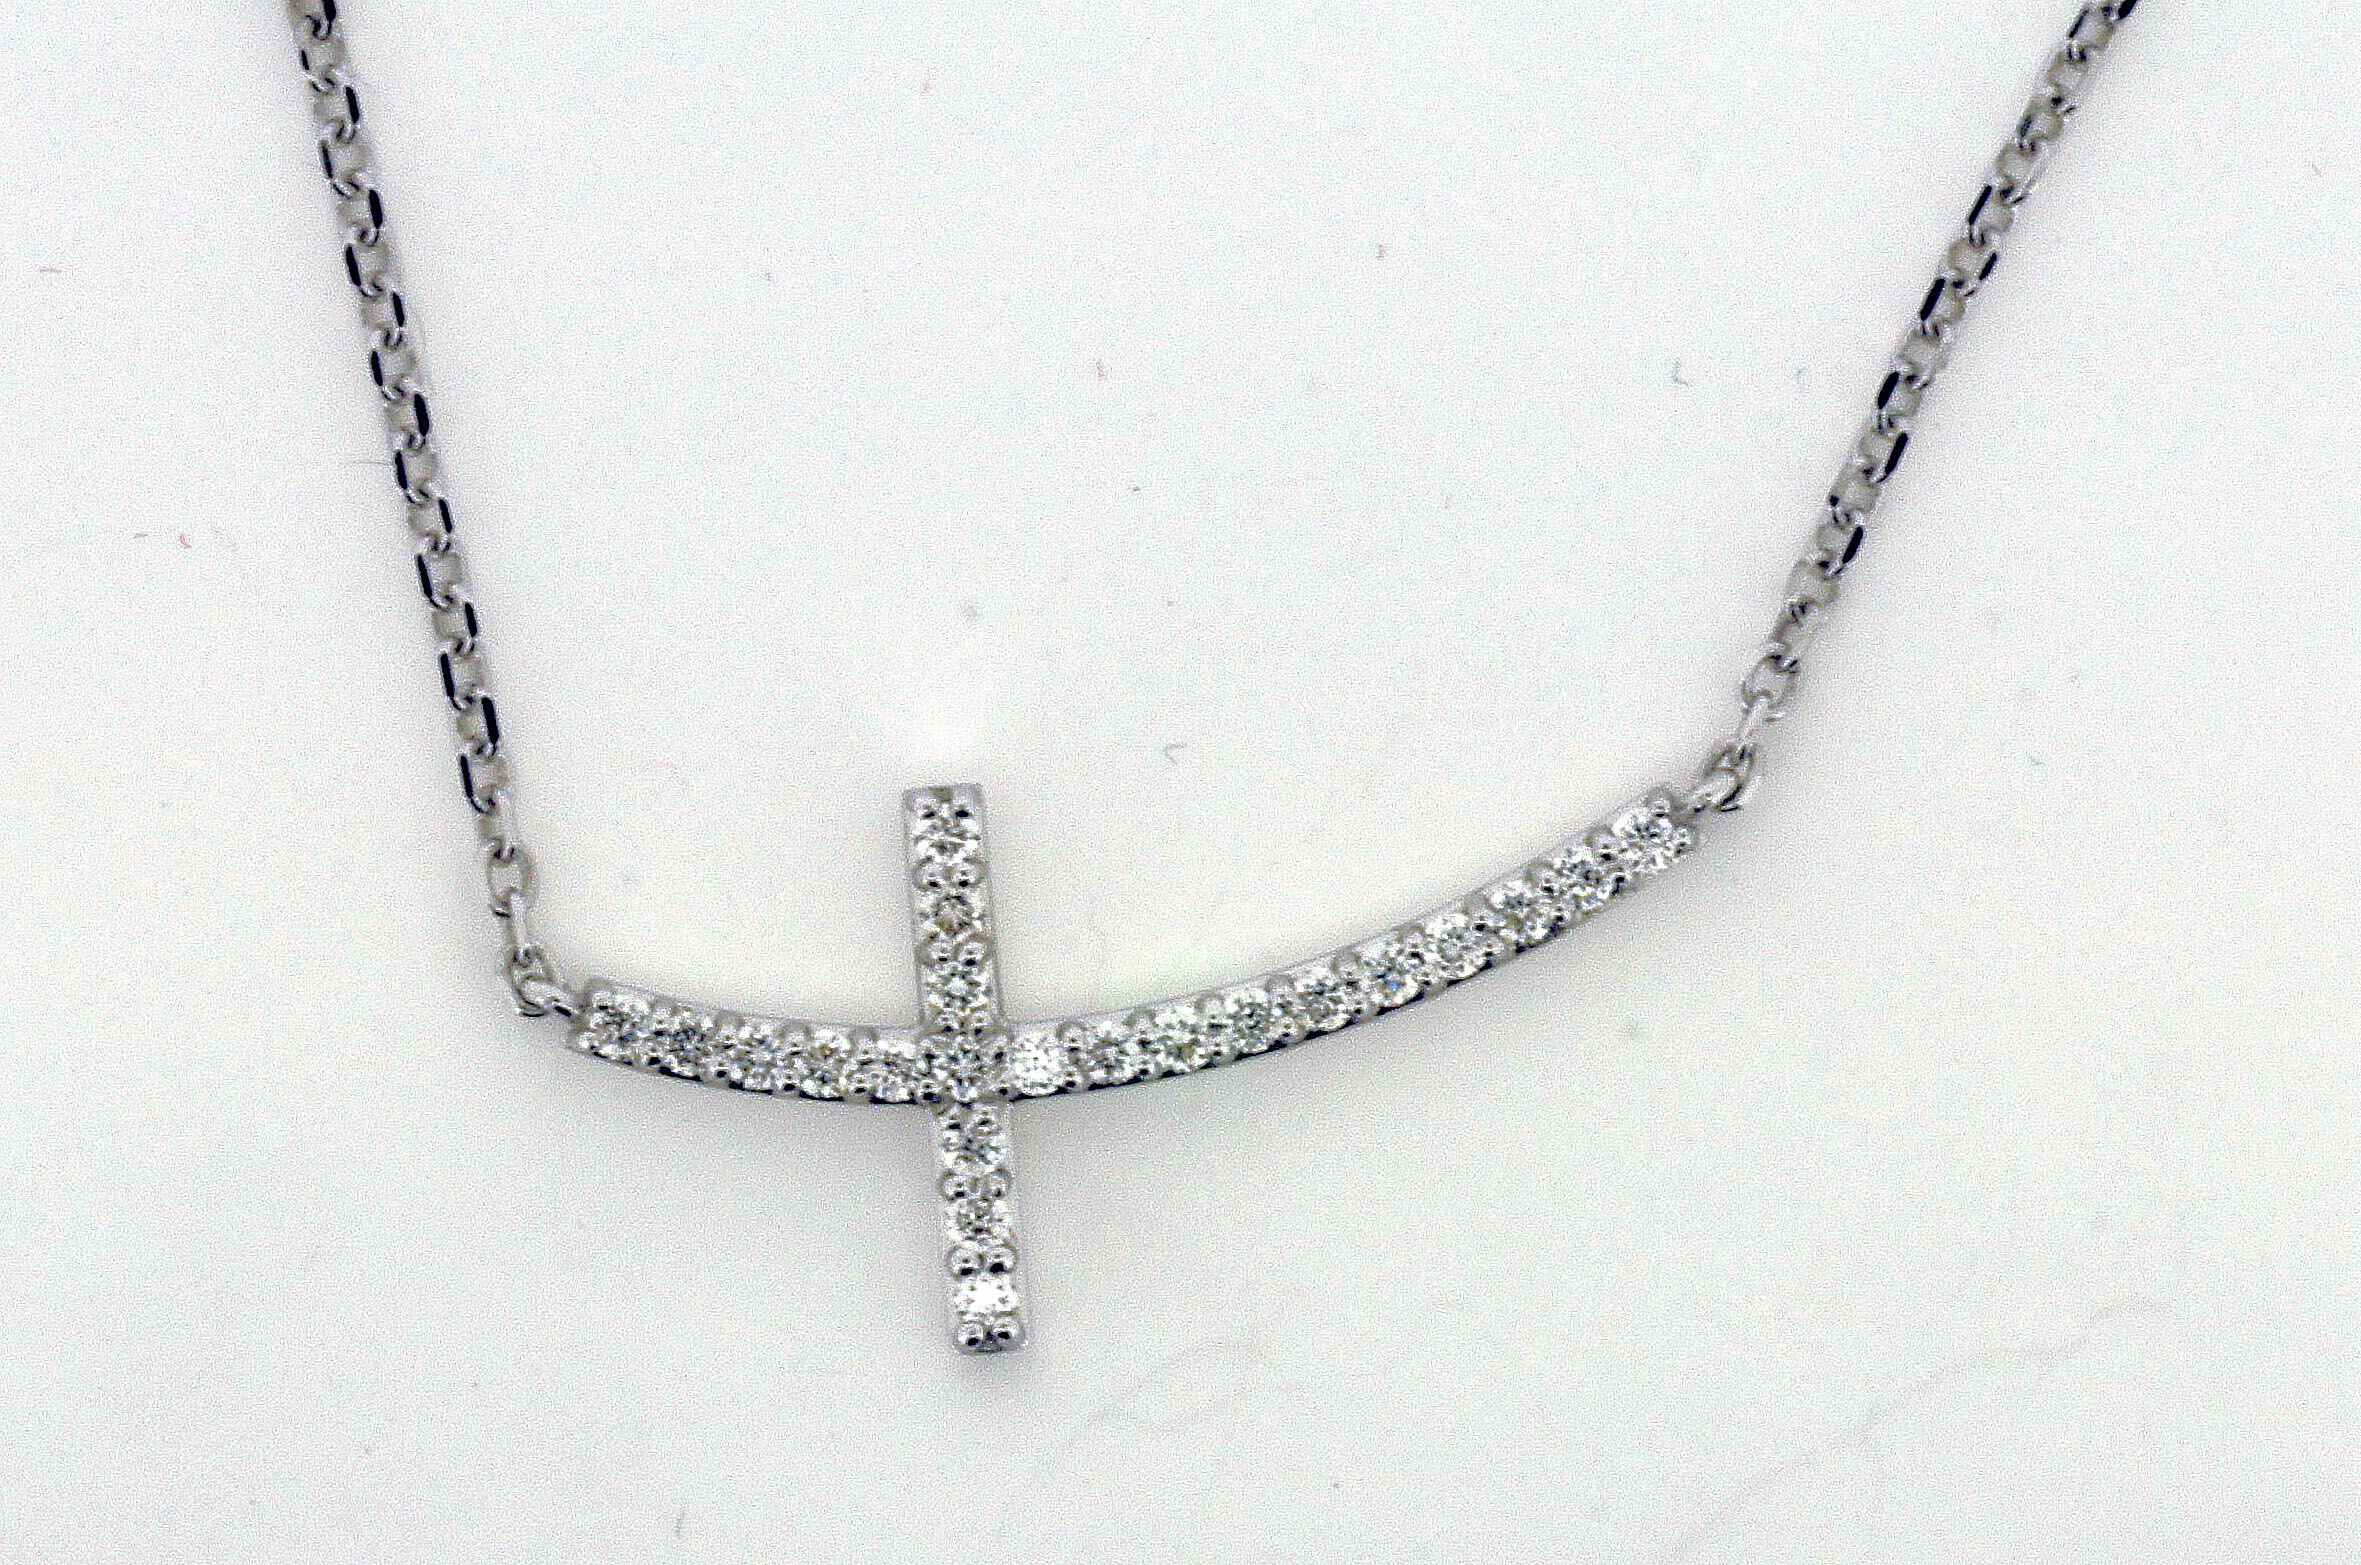 14 karat white gold with twenty two round brilliant cut diamonds prong set. The diamonds are G-Color and VS2 Clarity.The cross is suspended on a diamond cut cable chain that is 1.5 mm thick with a lobster clasp. The piece is a total of 18inches long but can be shortened to any length,the cross itself is 28 x 14mm. This item weighs approximately 4grams.